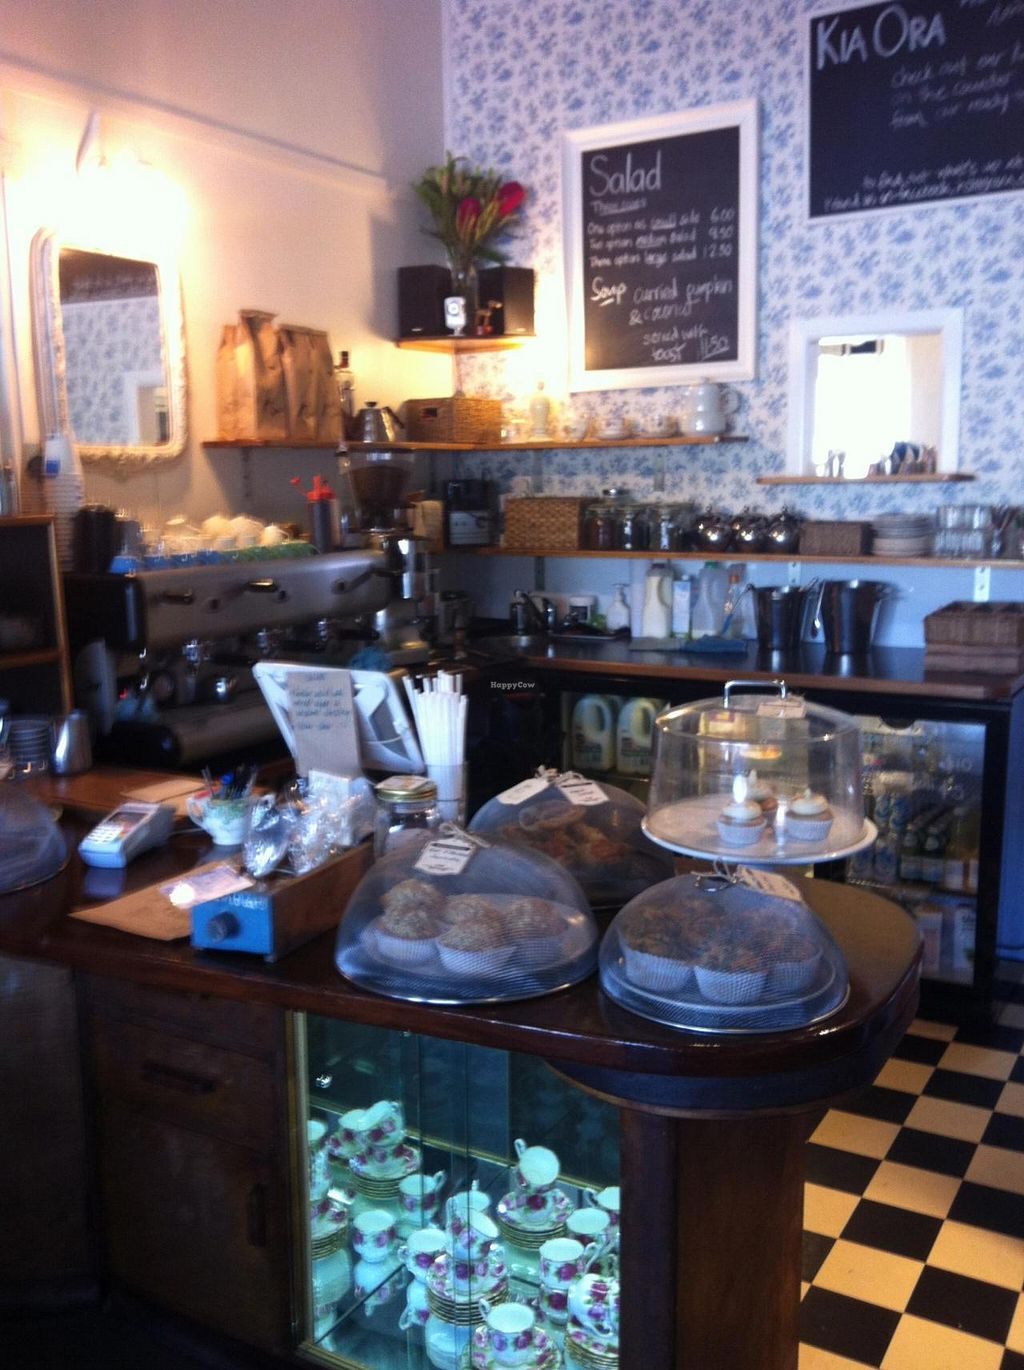 """Photo of CLOSED: Cosset  by <a href=""""/members/profile/KathrineGladwinRoss"""">KathrineGladwinRoss</a> <br/>Sooo tastie…it's nice to eat out where you know the food is high quality.  <br/> September 4, 2014  - <a href='/contact/abuse/image/21993/78944'>Report</a>"""